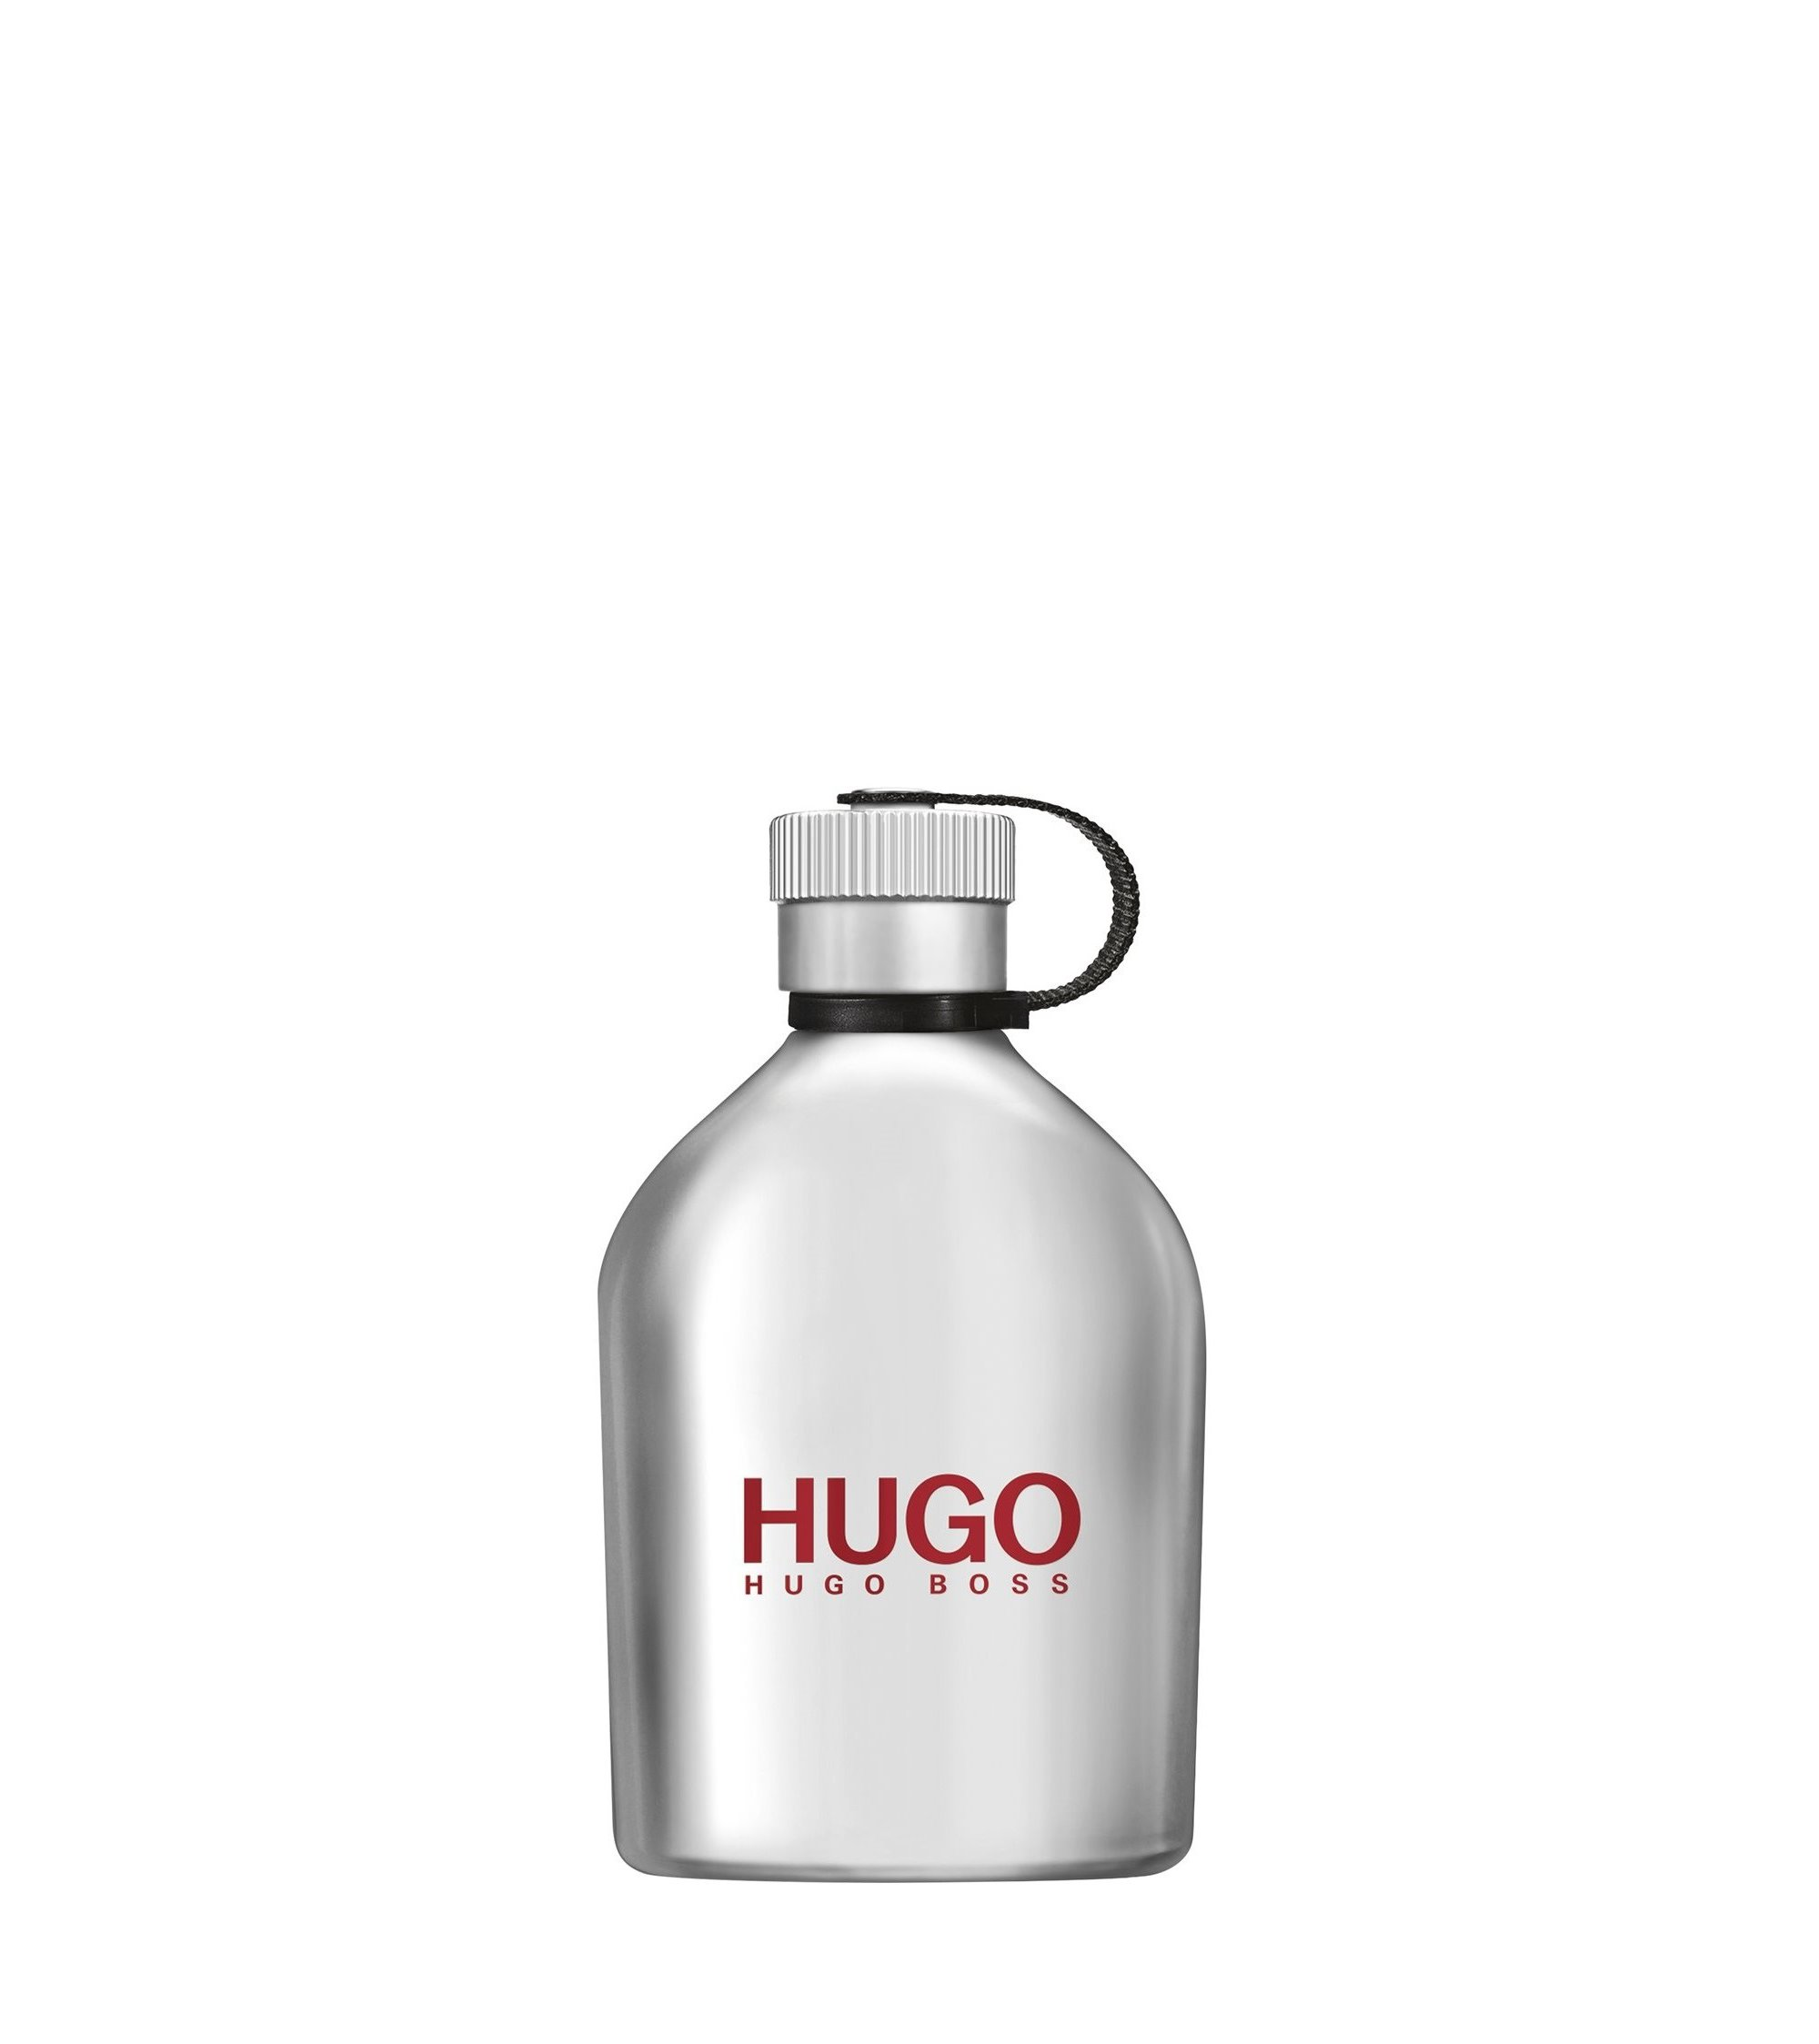 Eau de toilette HUGO Iced de 200 ml, Assorted-Pre-Pack